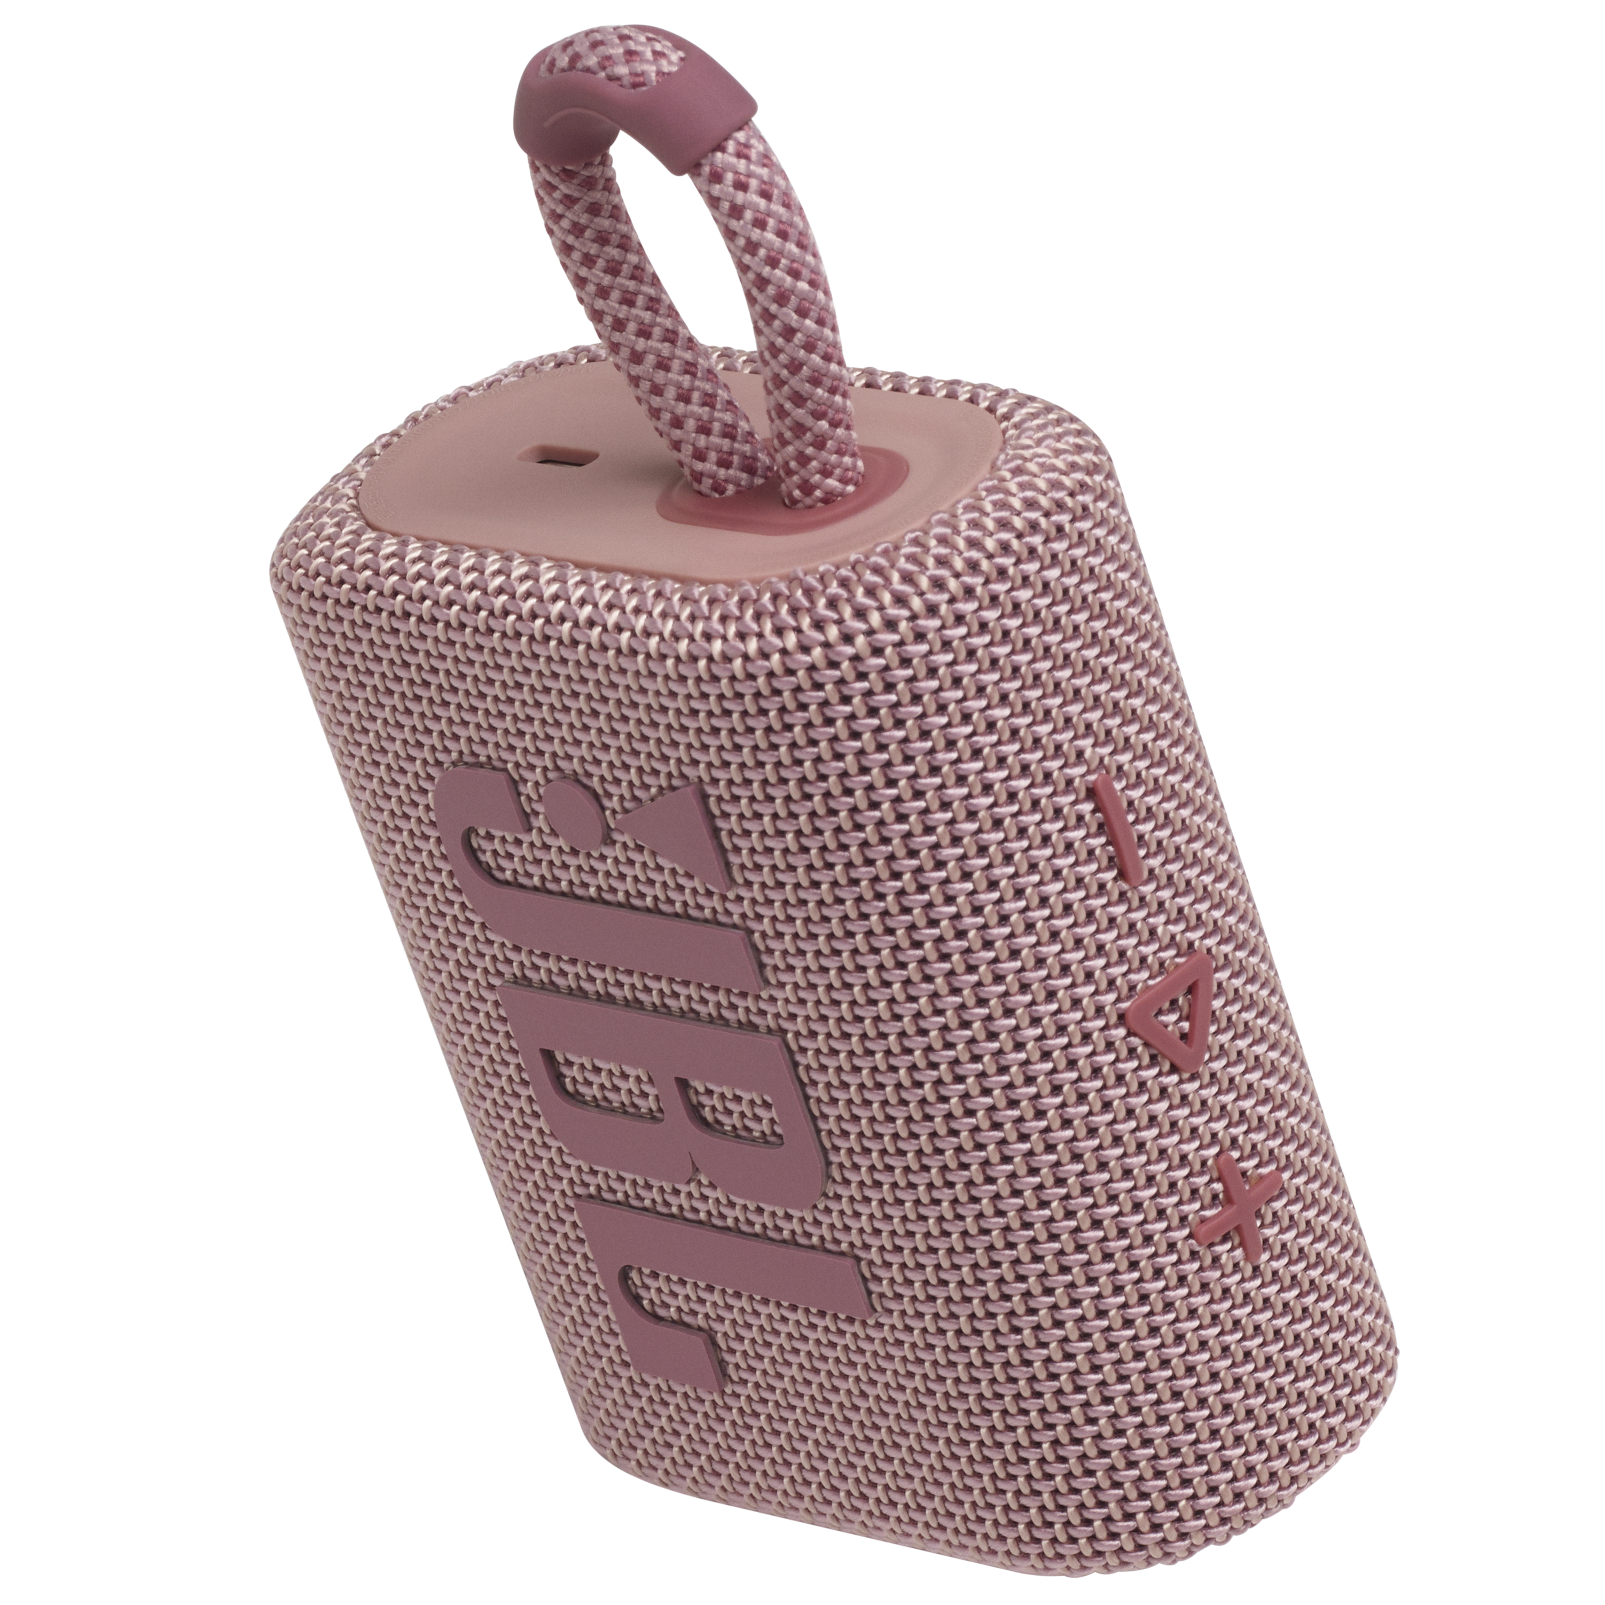 JBL GO 3 - Pink - Portable Waterproof Speaker - Detailshot 2